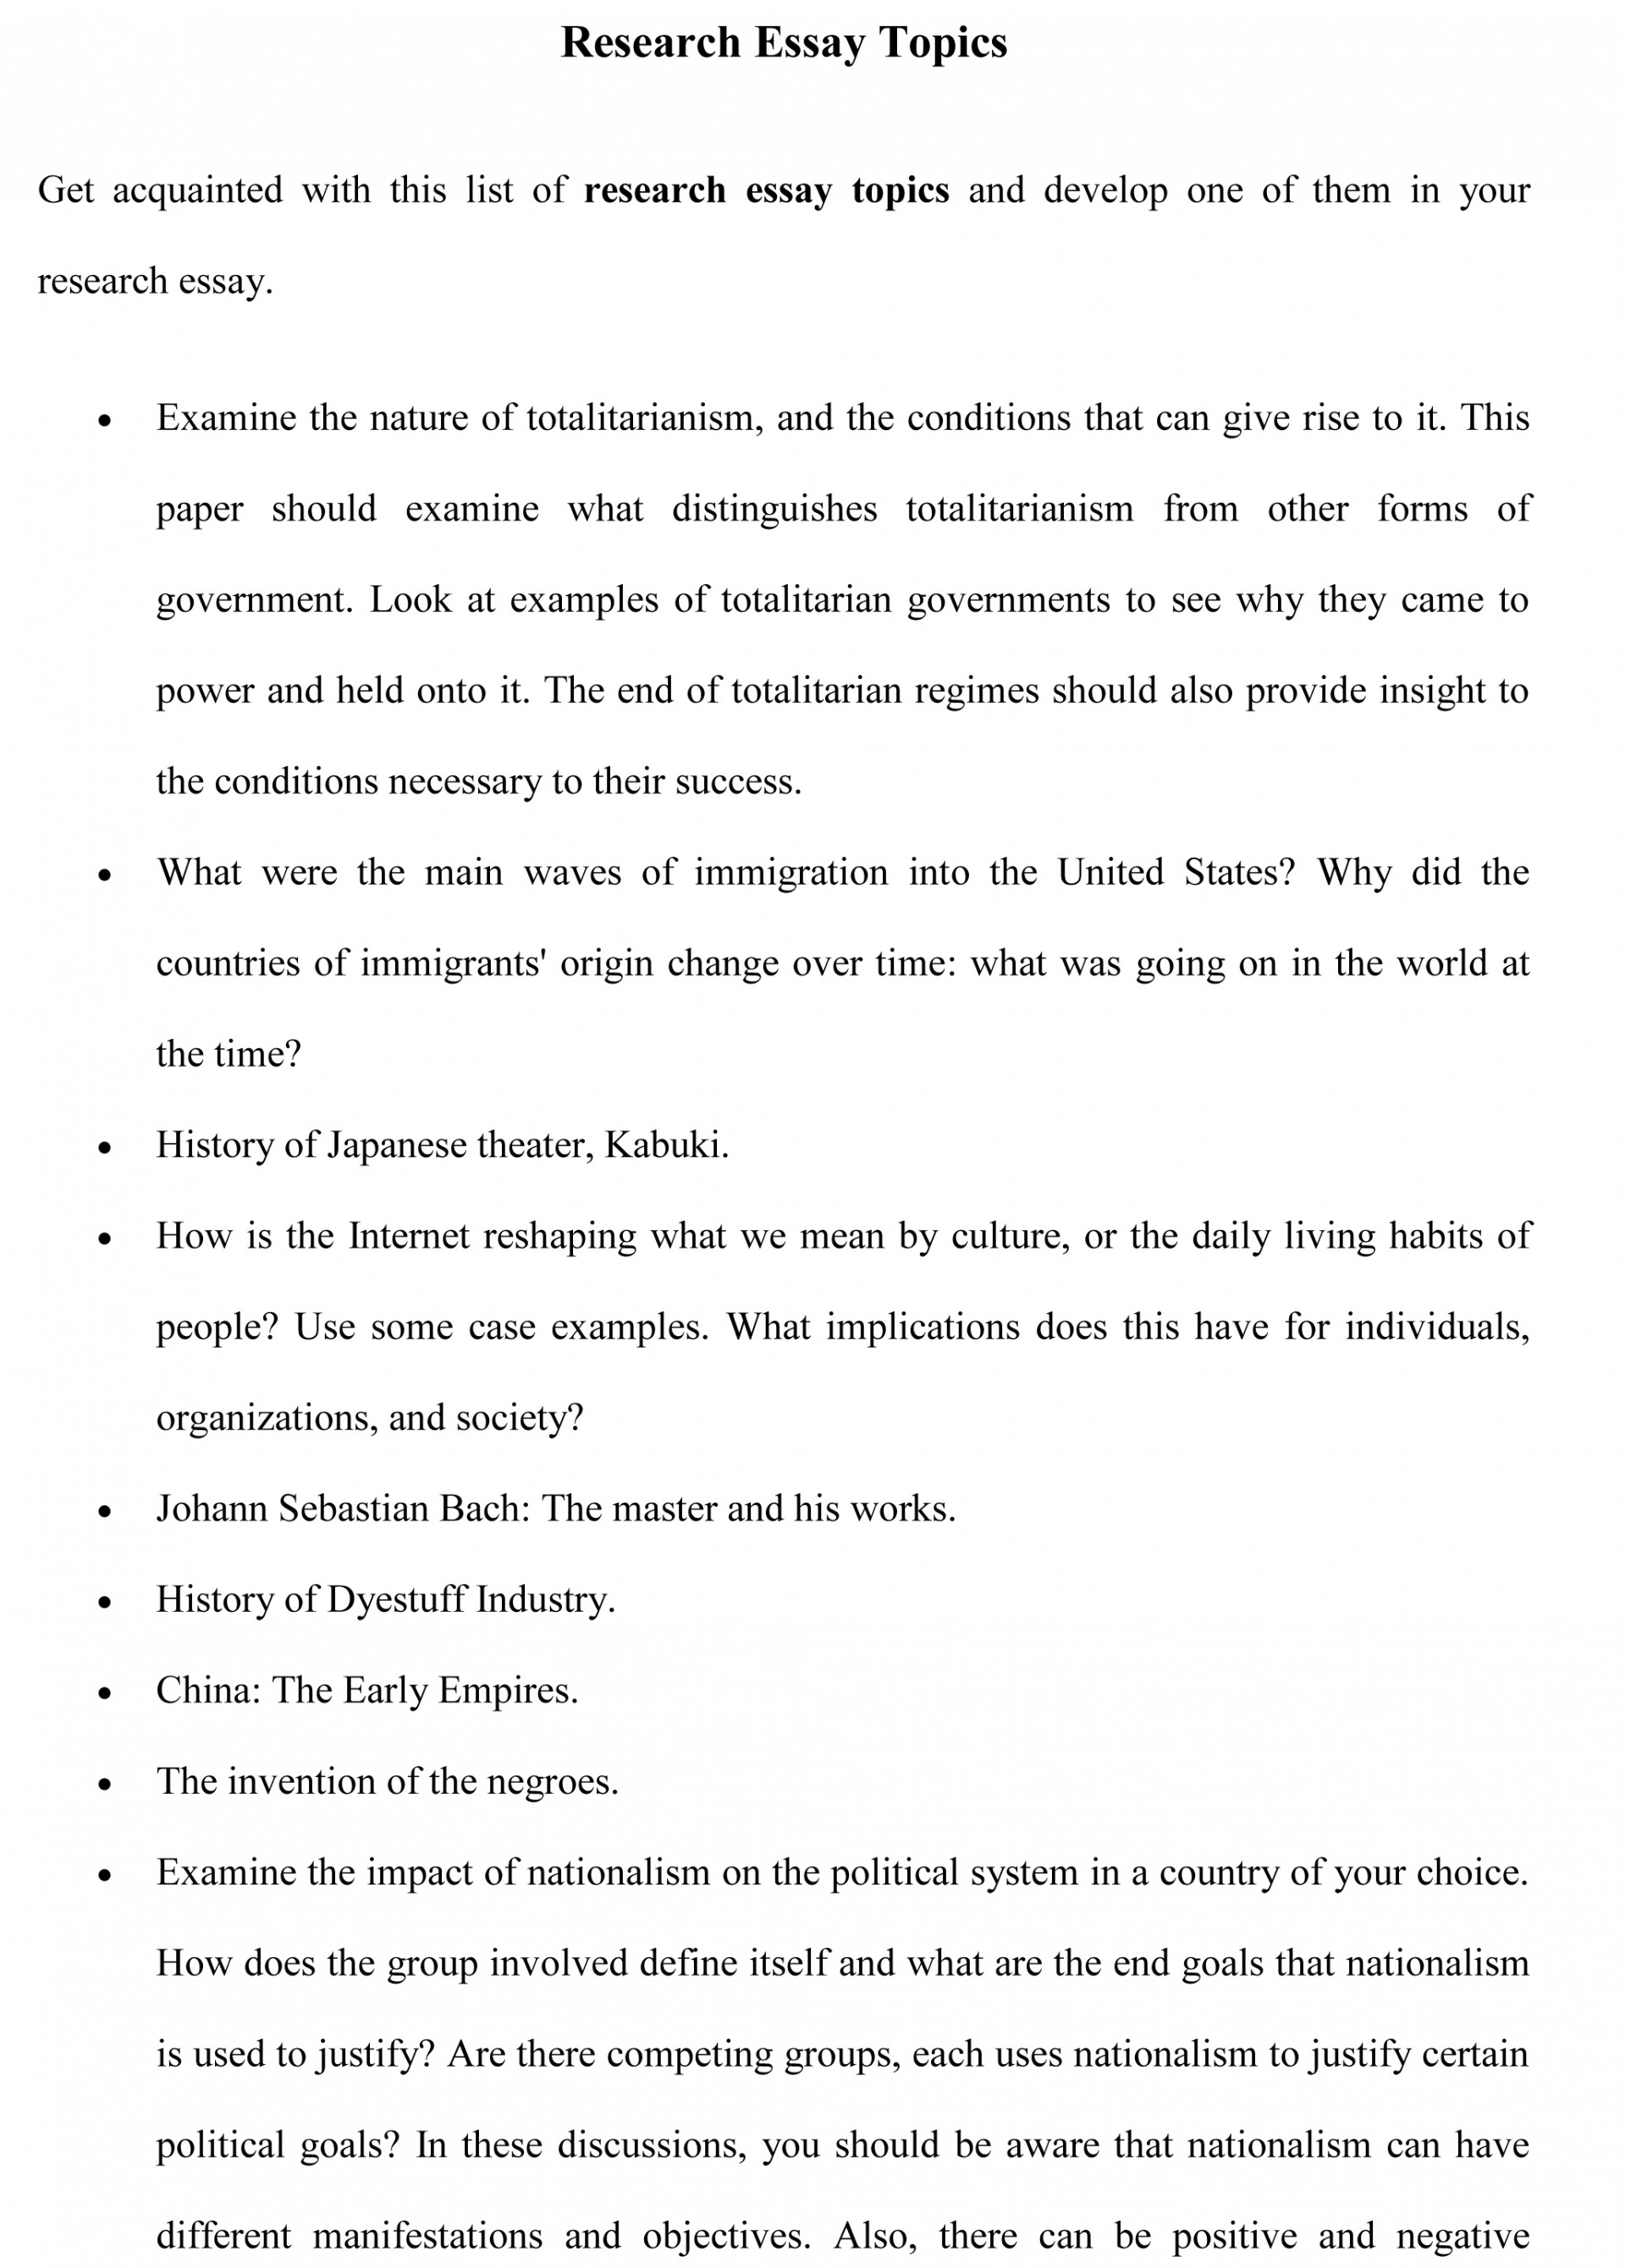 006 Research Paper Essay Topics Sample Controversial Outstanding Ideas 1920